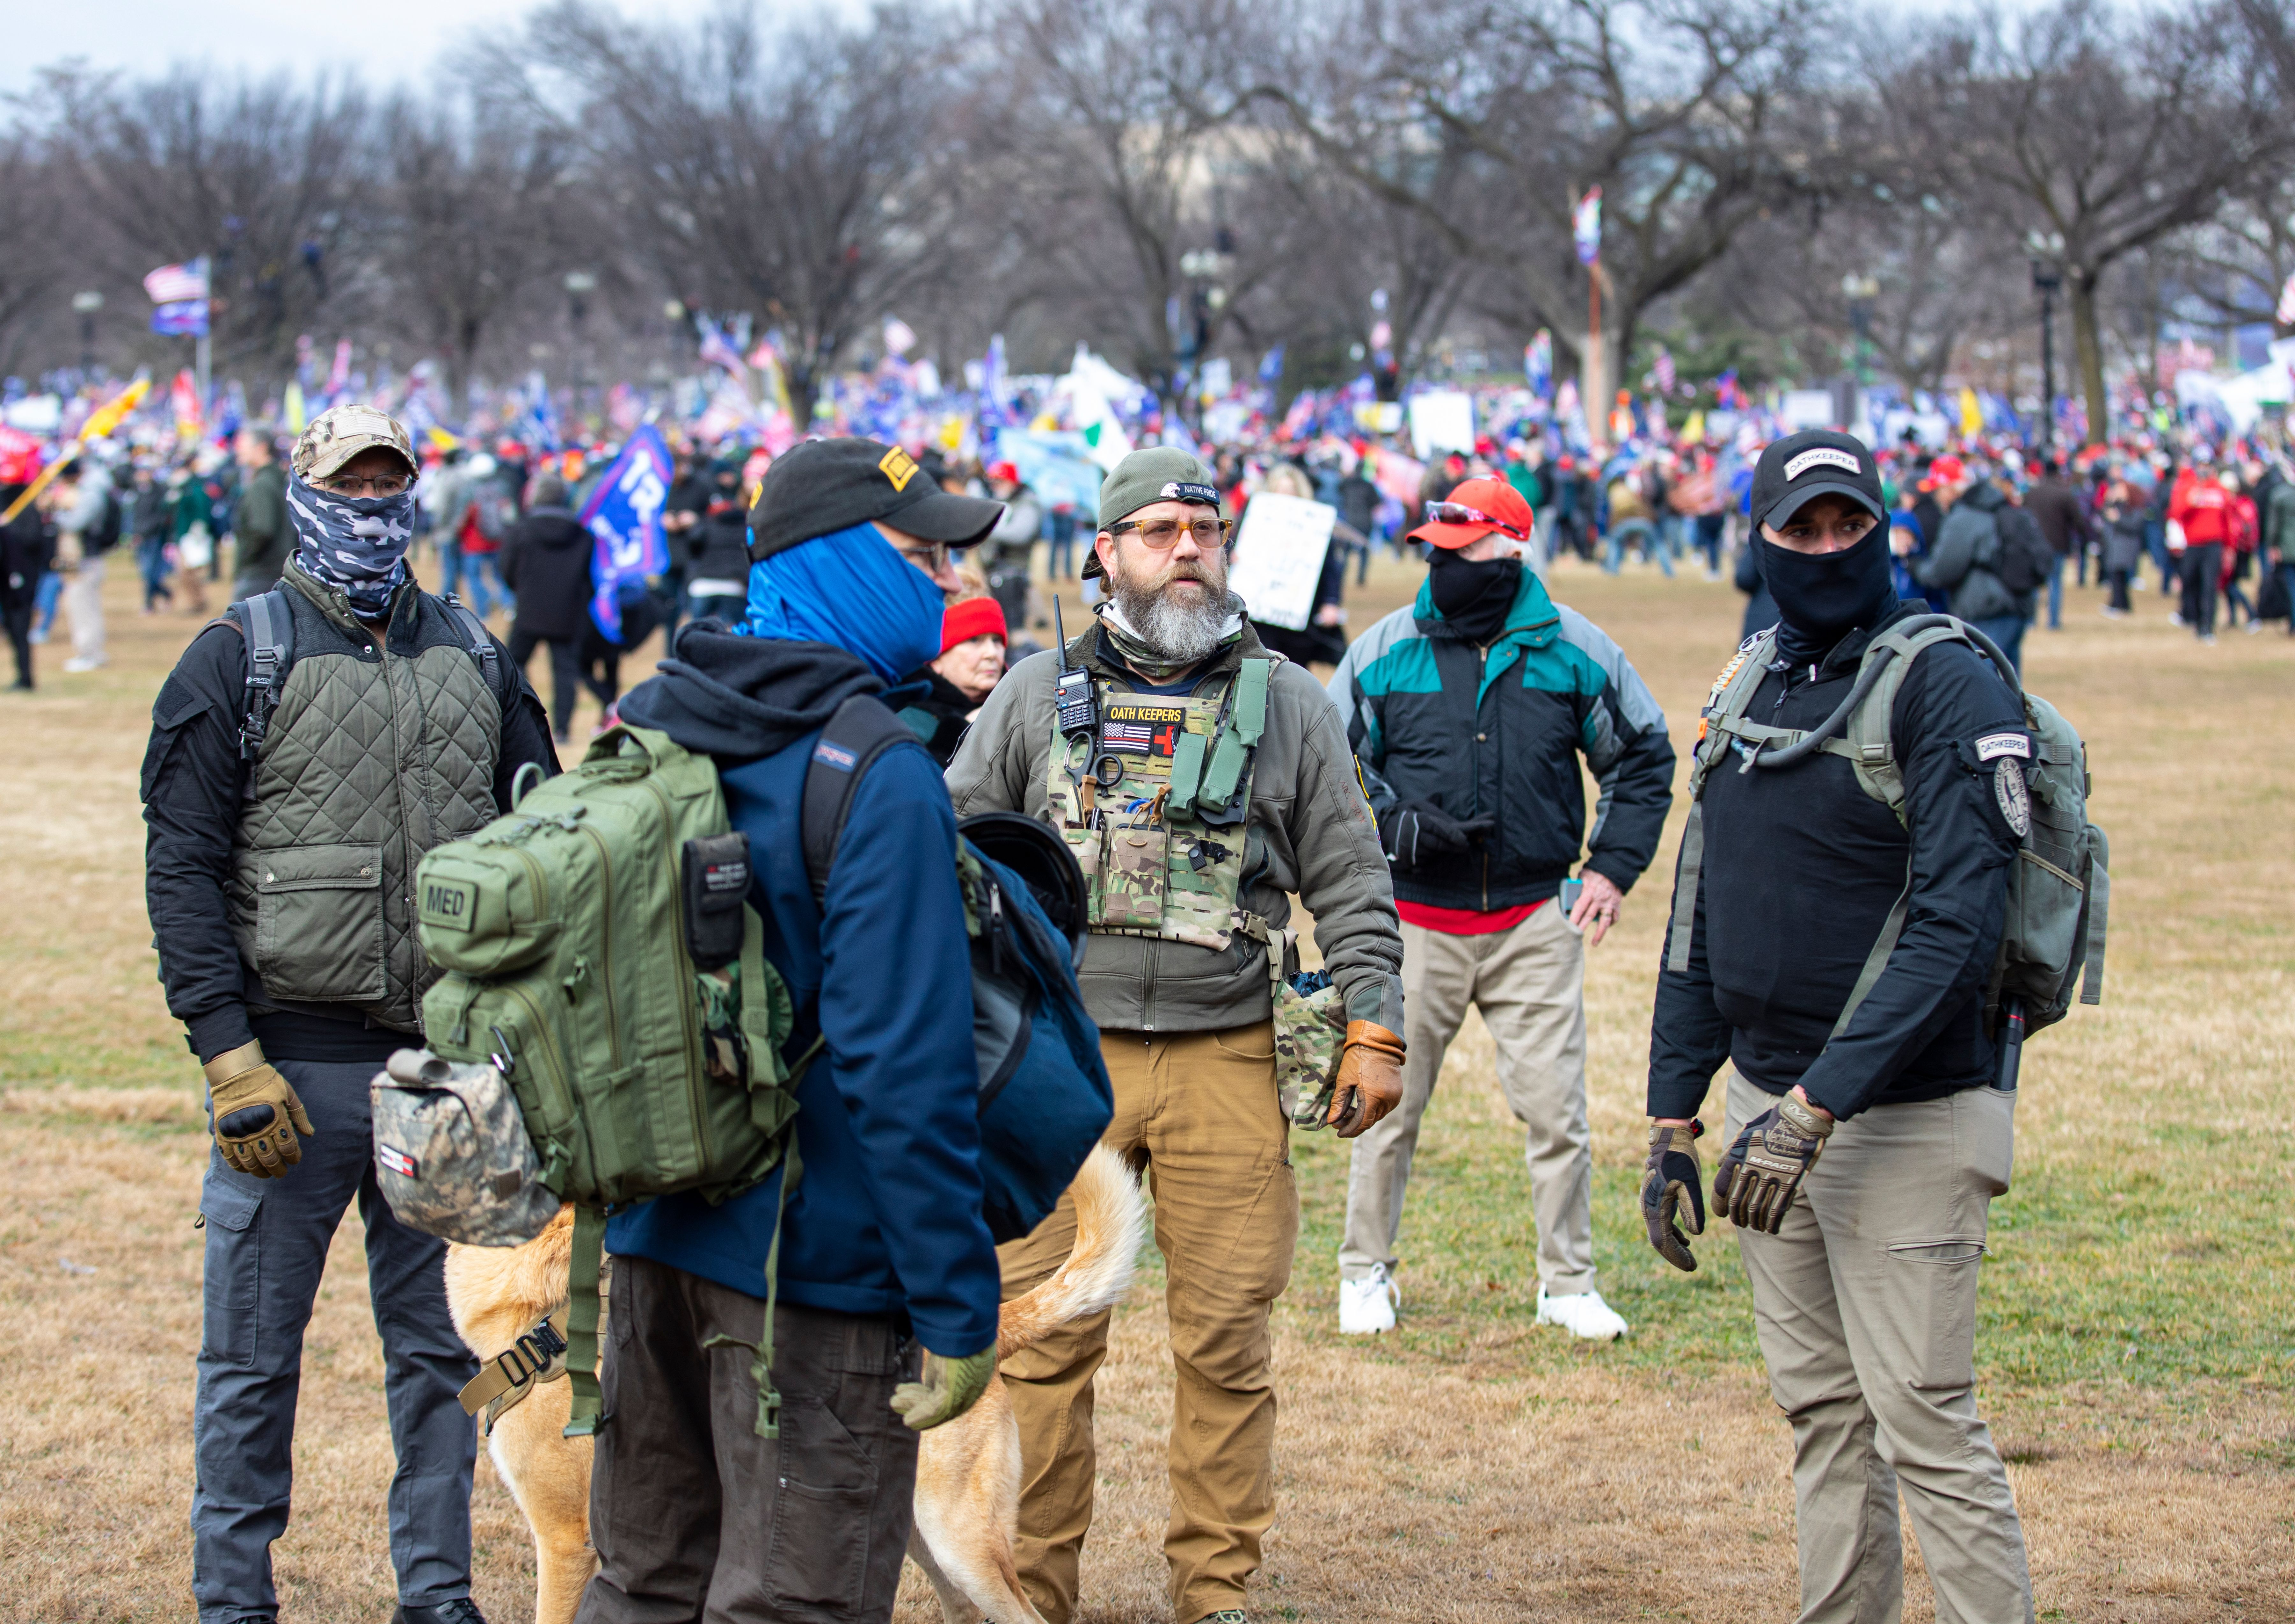 """Men belonging to the Oath Keepers wearing military tactical gear attend the """"Stop the Steal"""" rally on January 06, 2021 in Was"""